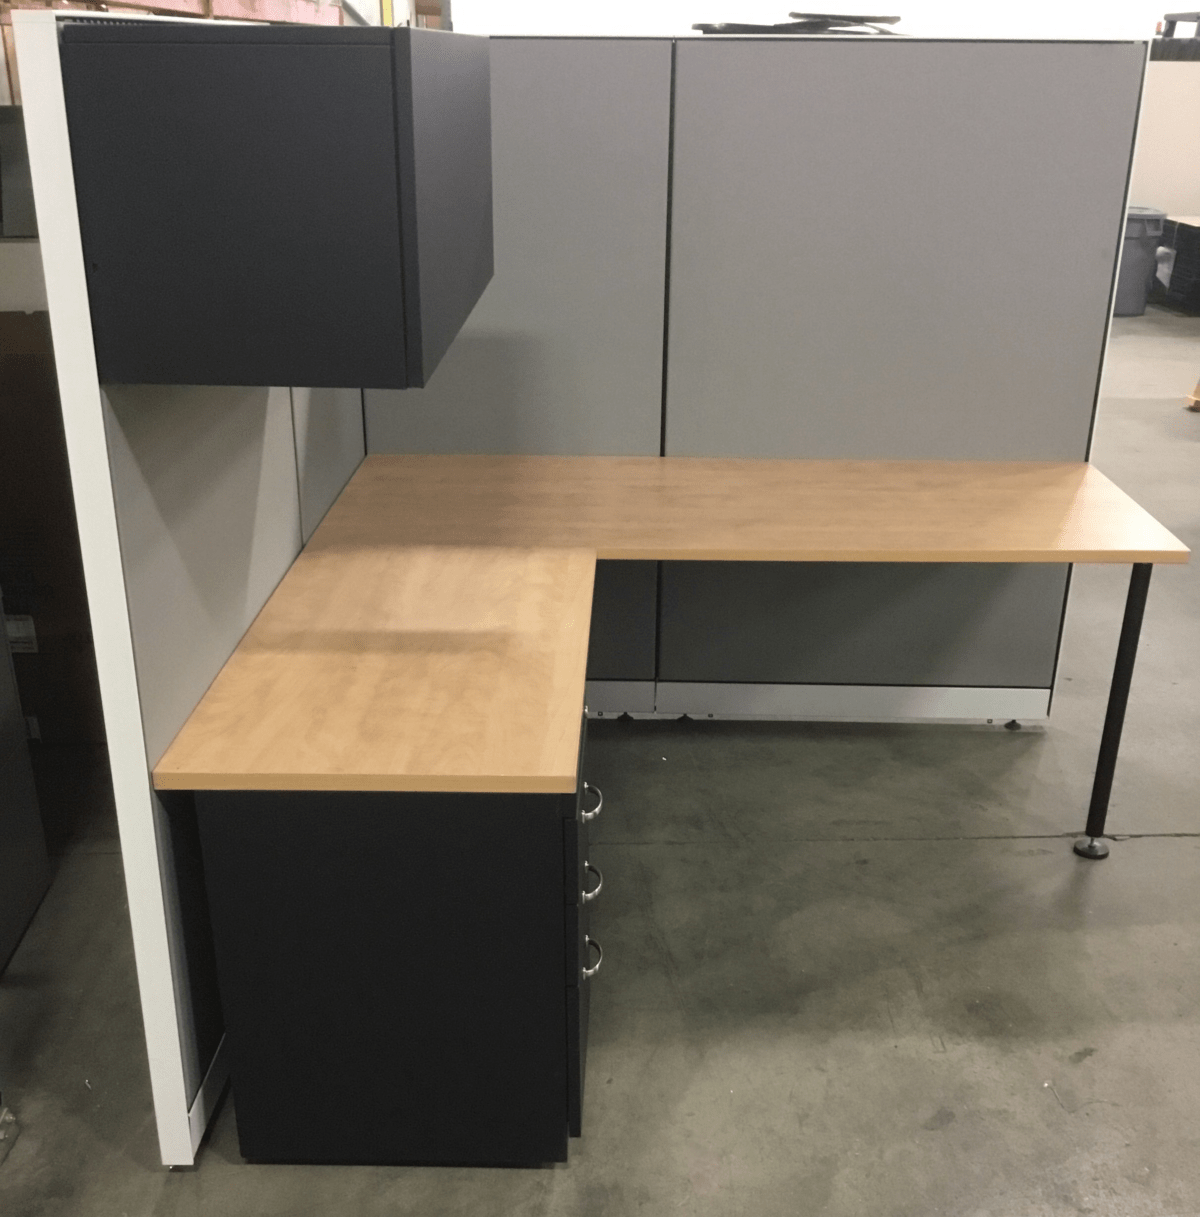 Steelcase Kick 6′ x 6′ L-shaped Workstation